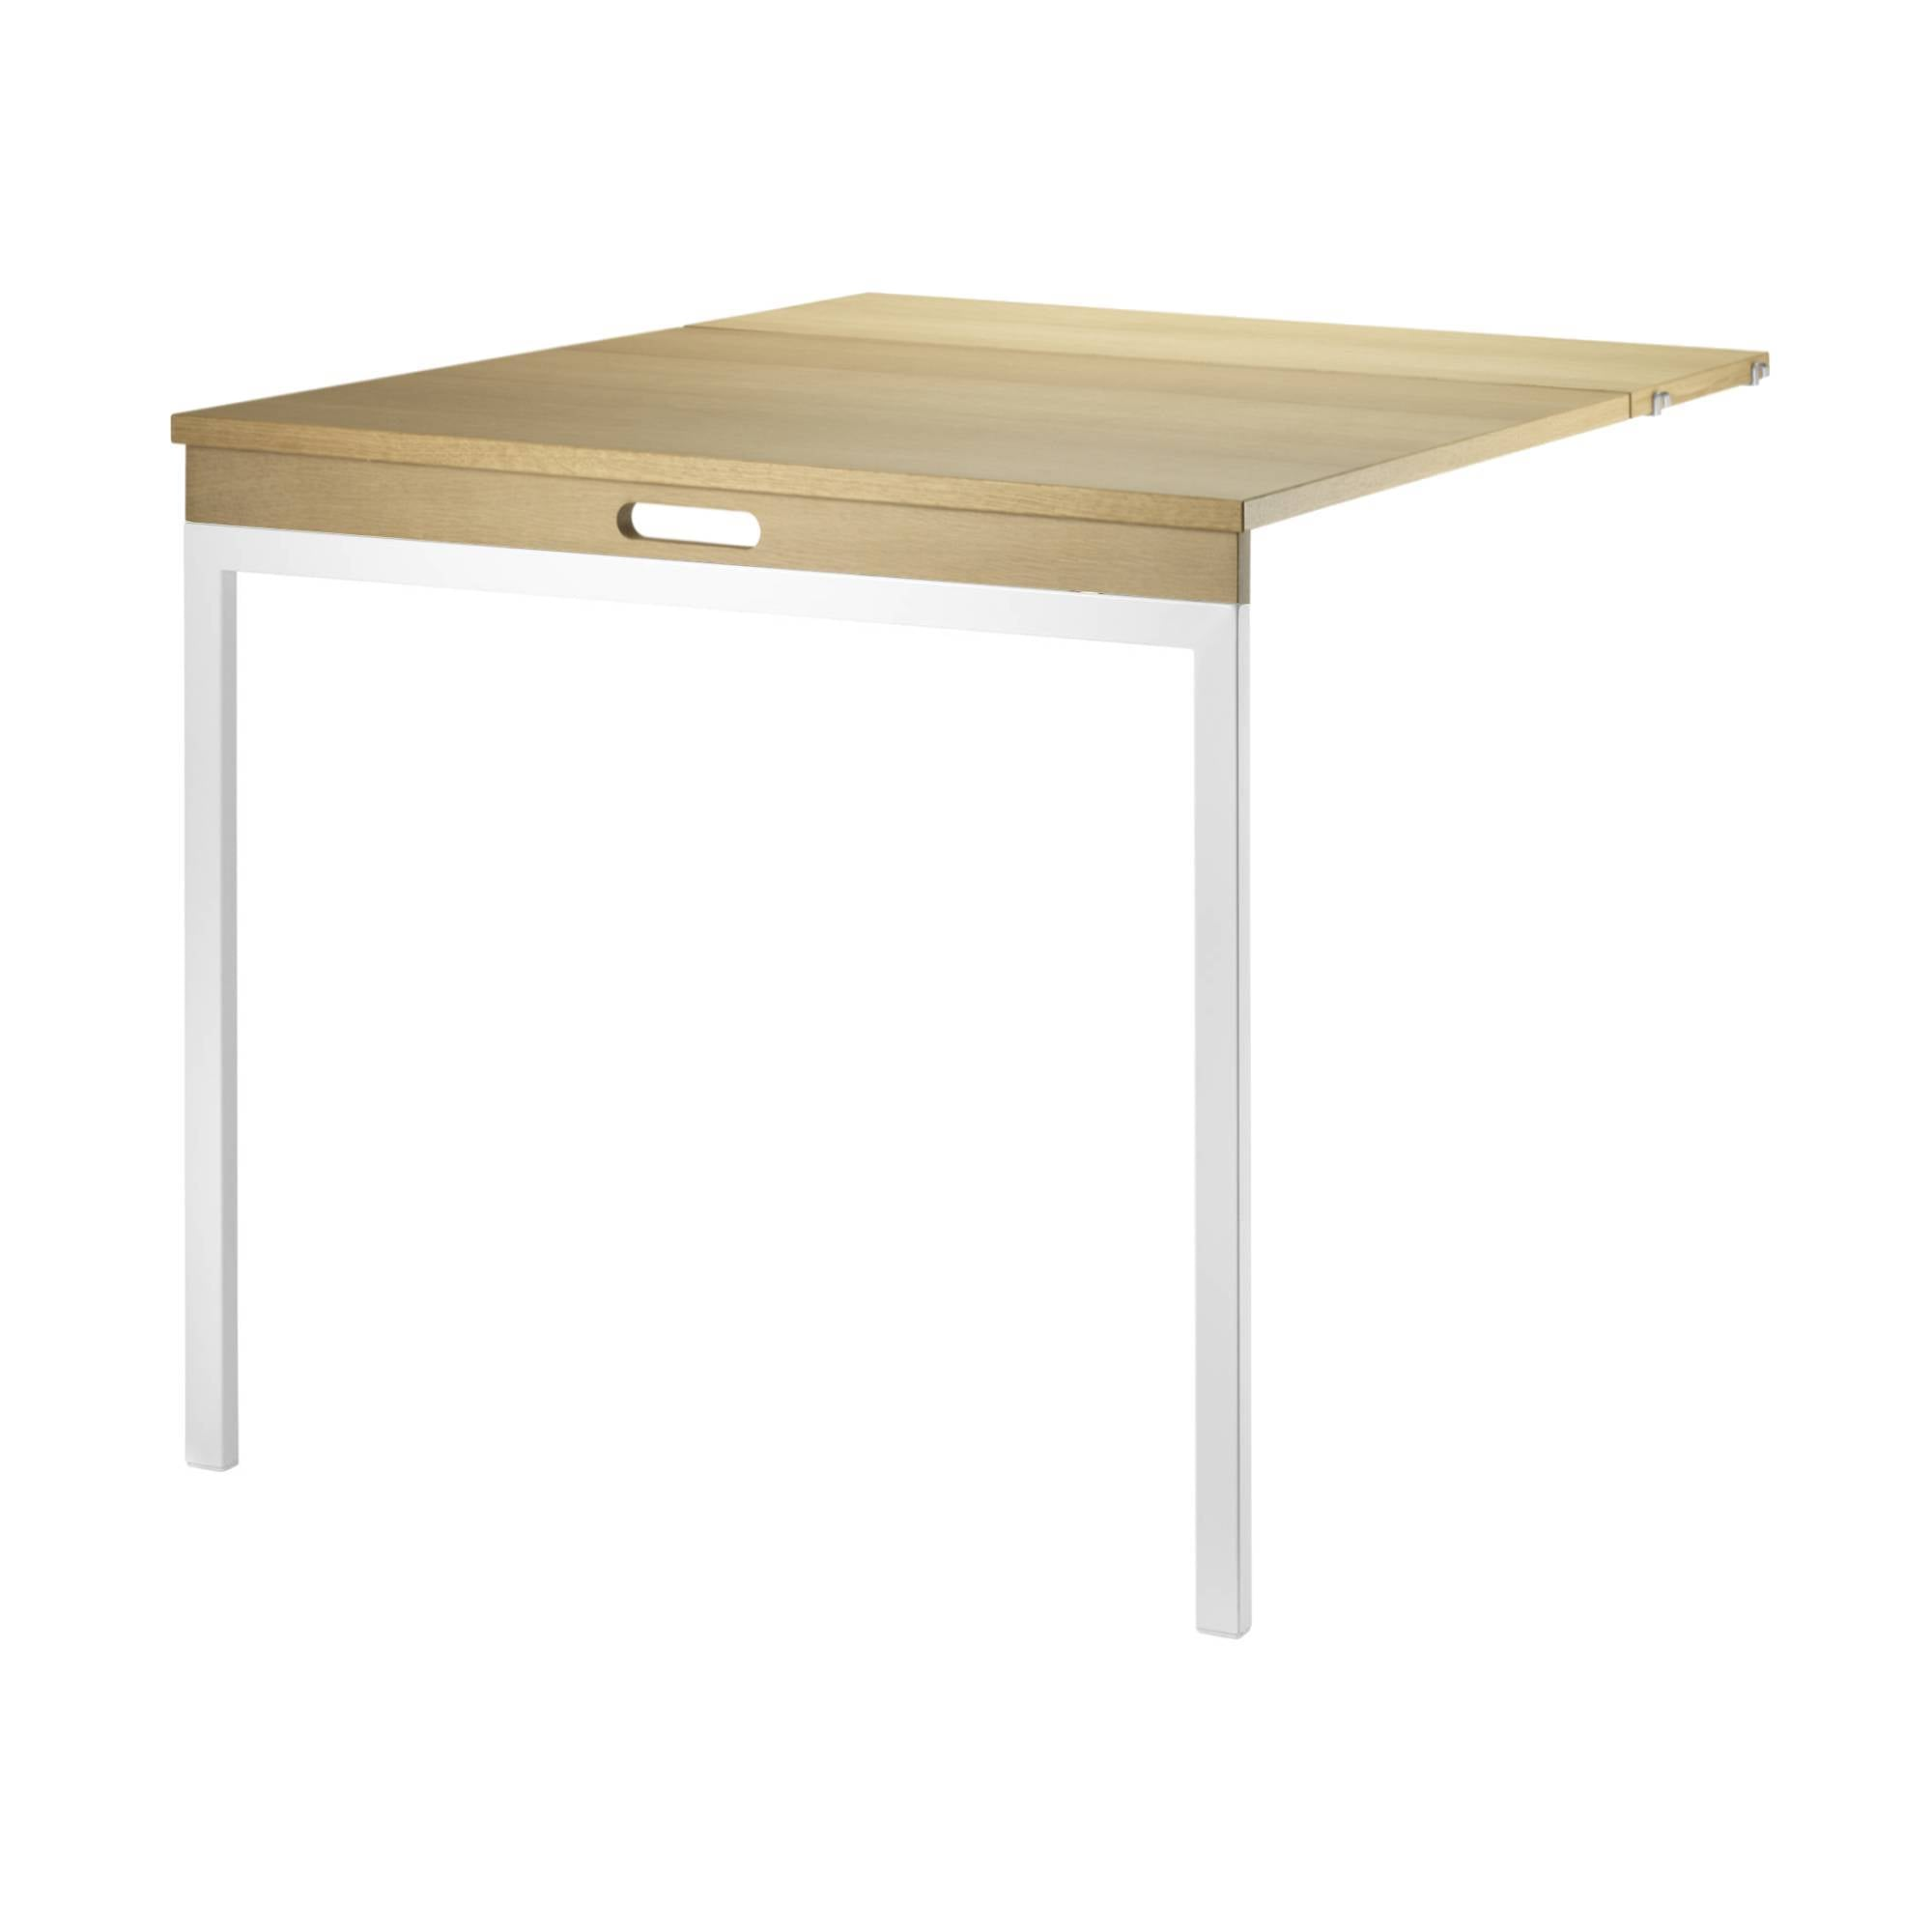 String Shelving System Folding Table: Oak + White Legs